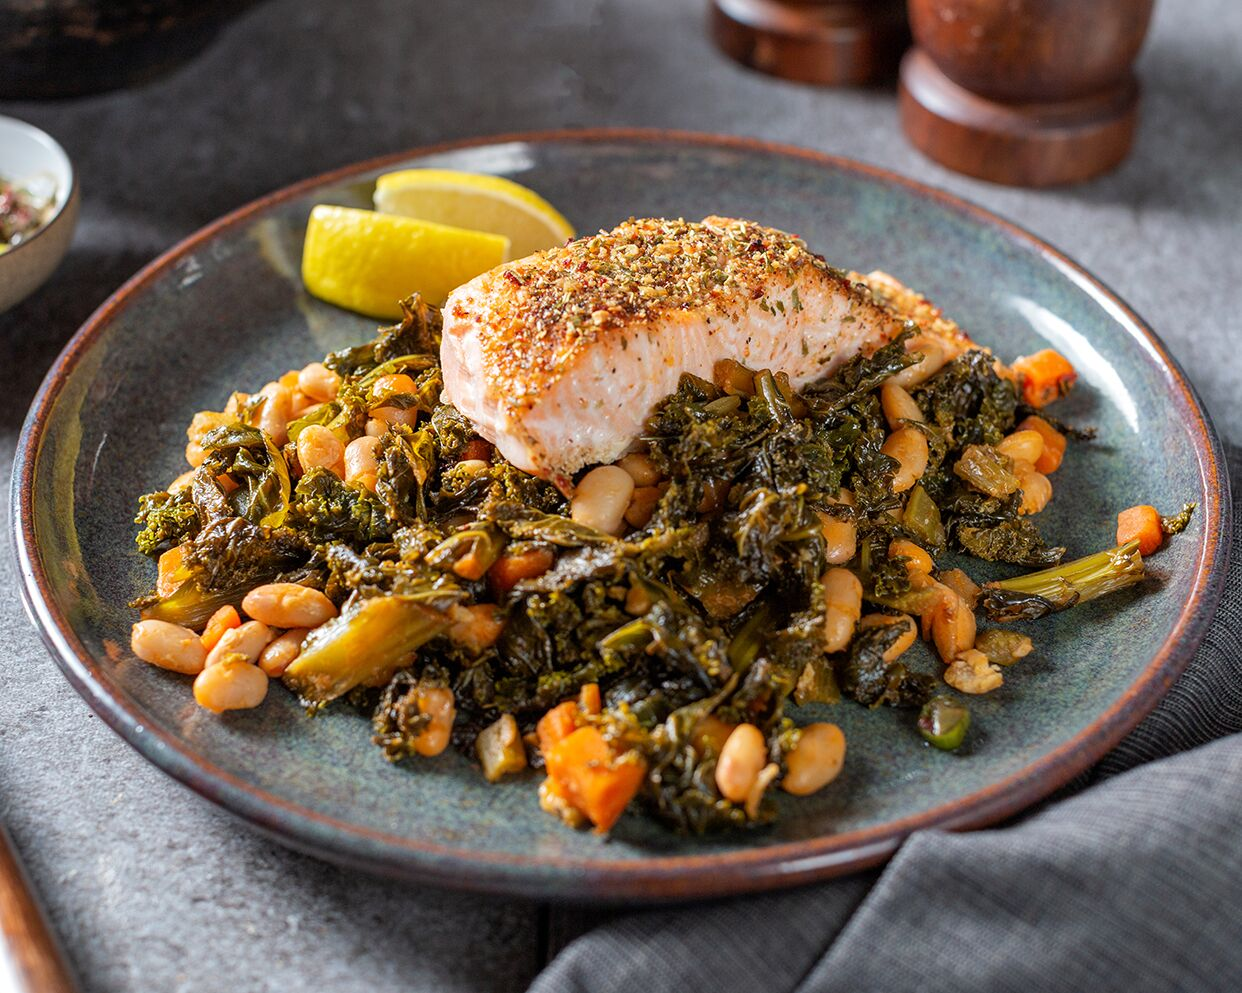 Freshly meals: a Tovala meal of salmon on a bed of sautéed beens and greens